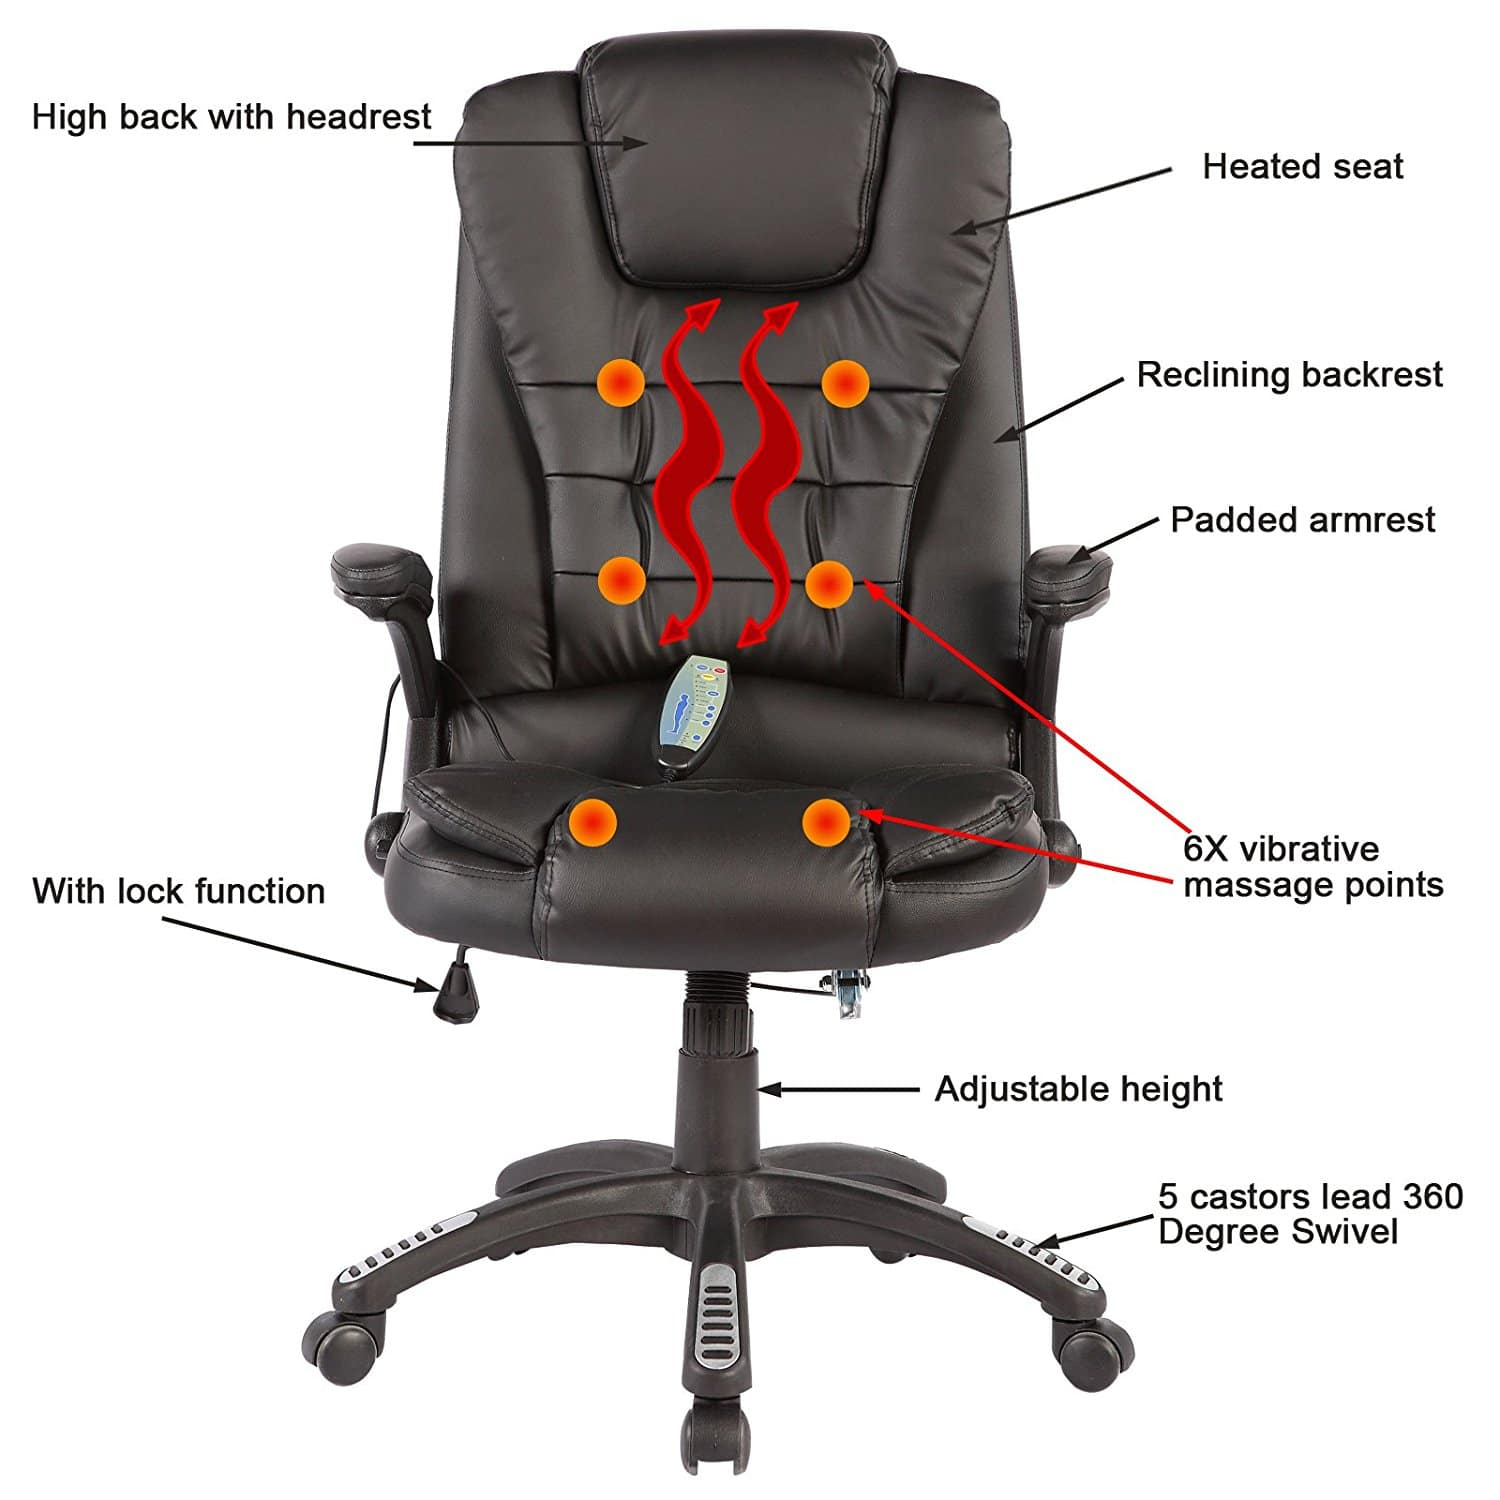 Top 3 Heated Office Chairs (And a Bonus!) - Reviews 2020